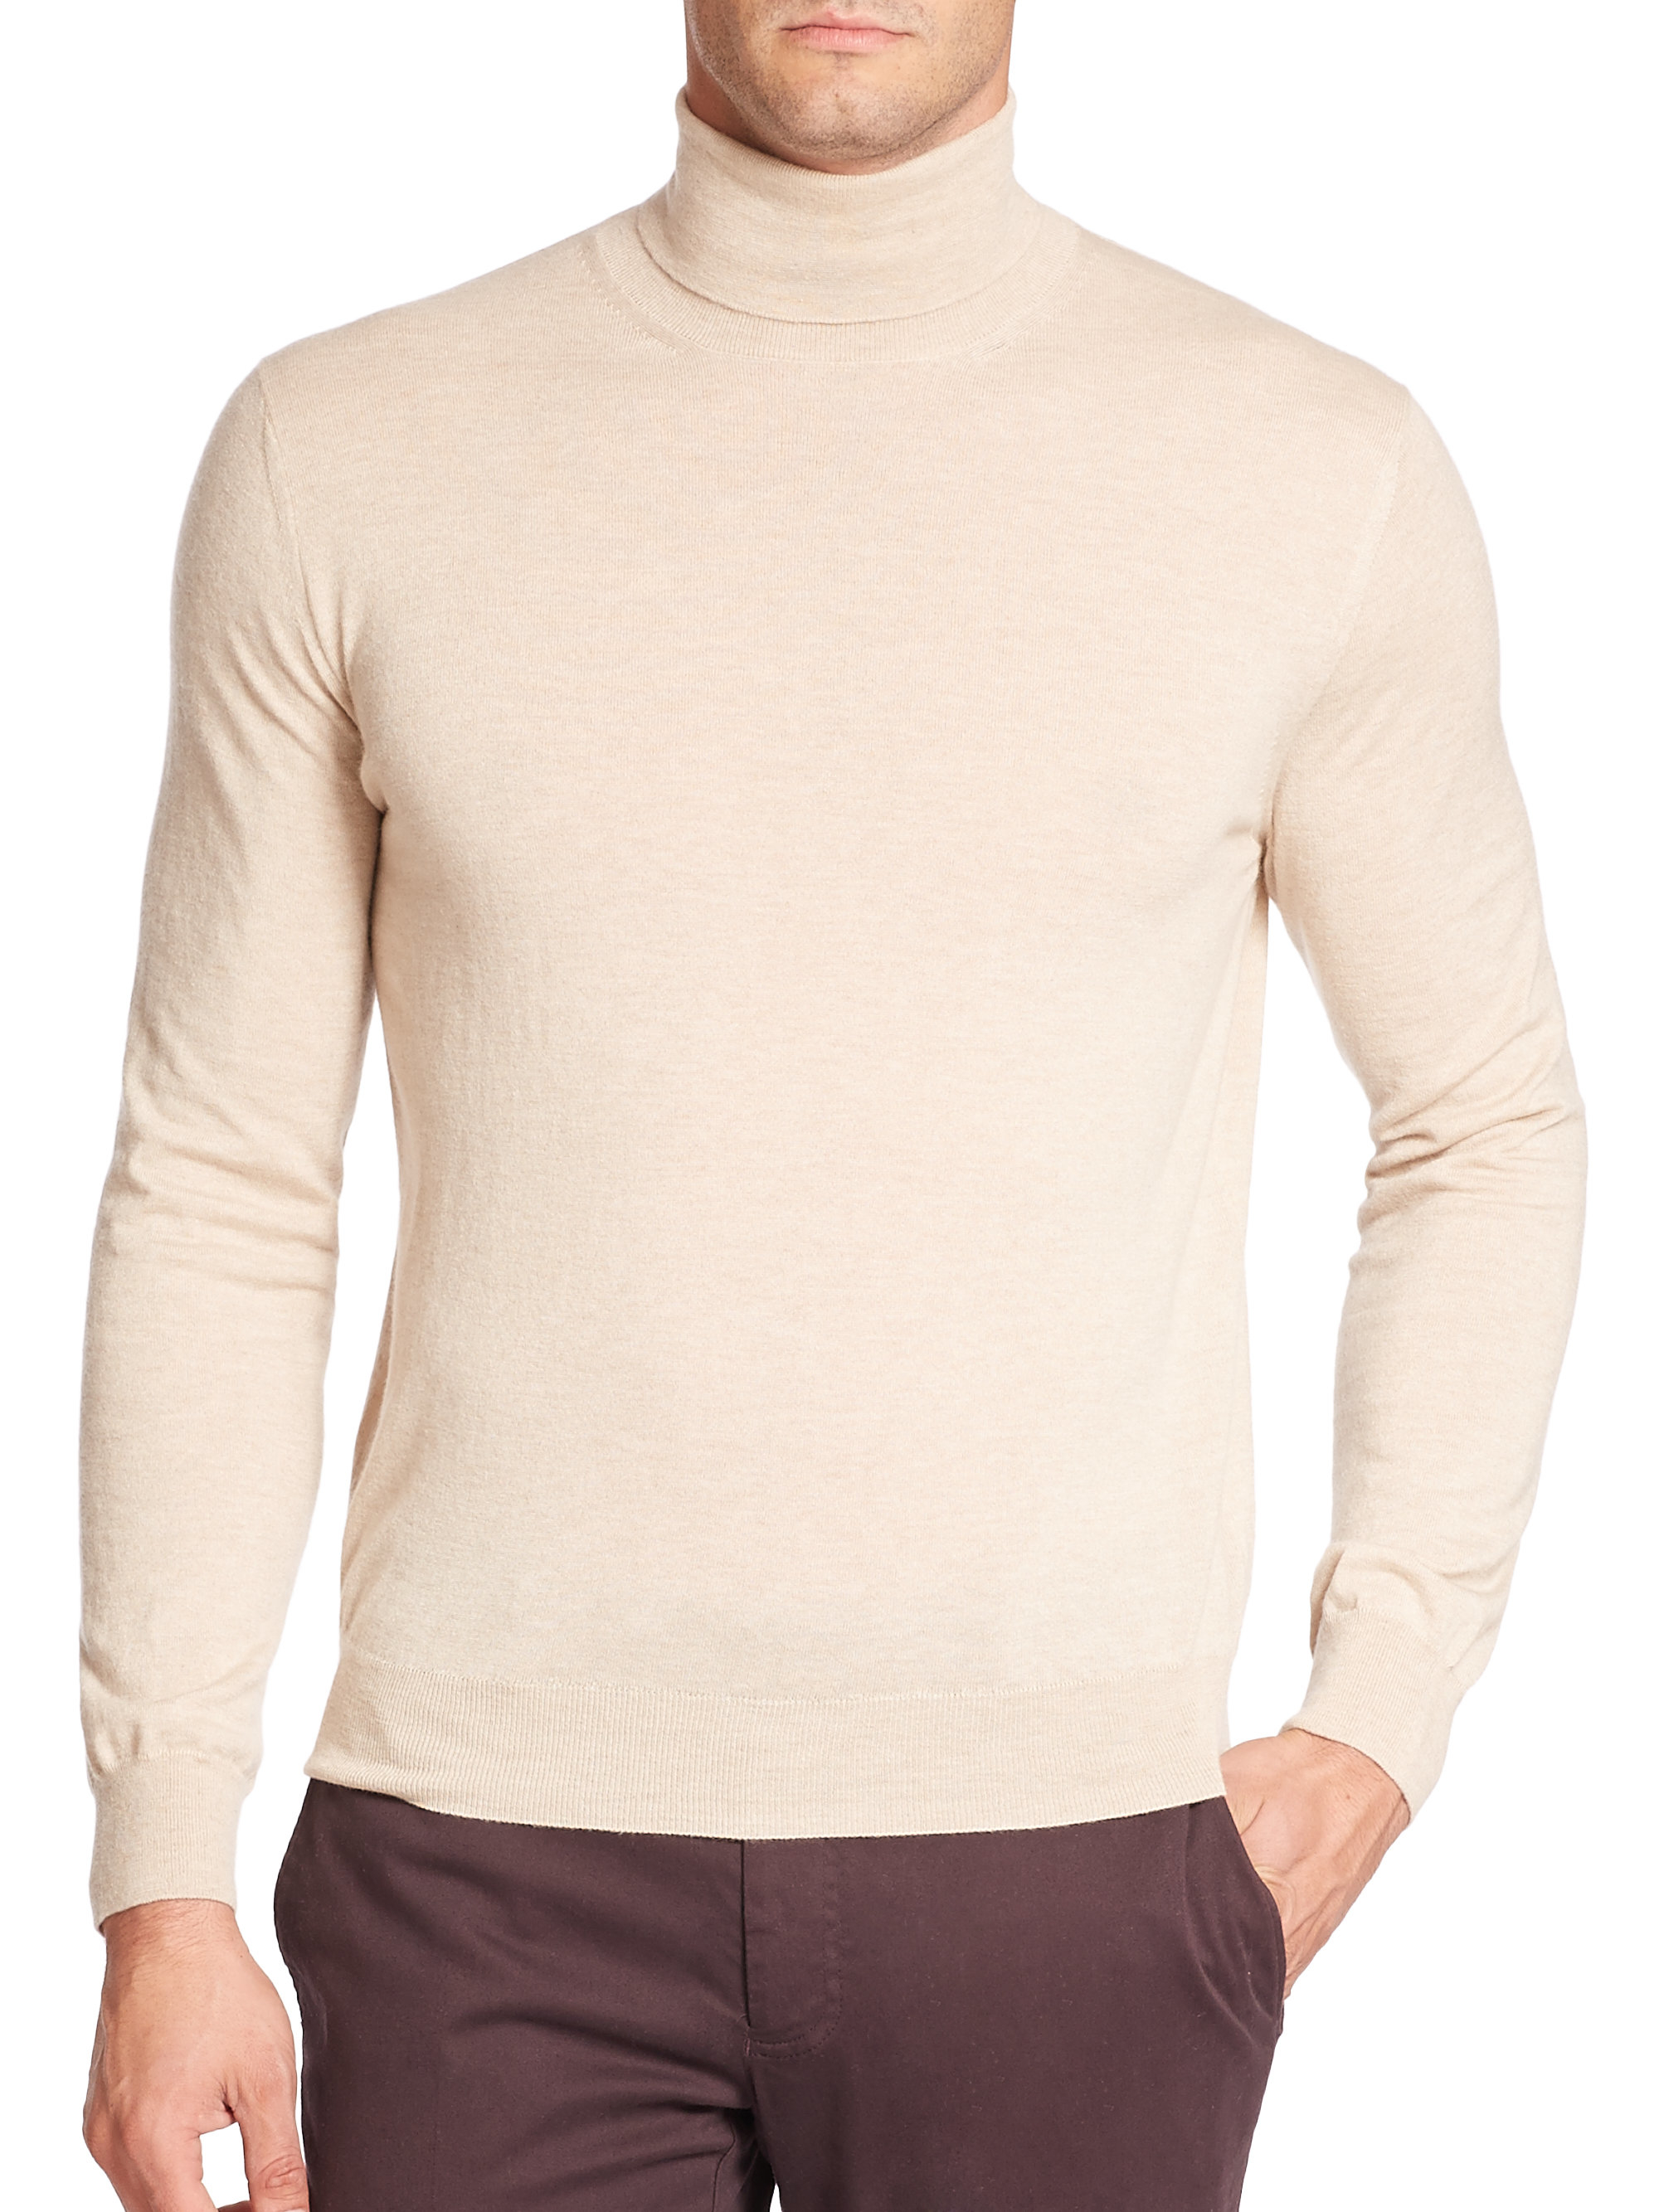 Canali Raw Edge Turtleneck Cashmere Sweater in Natural for Men | Lyst